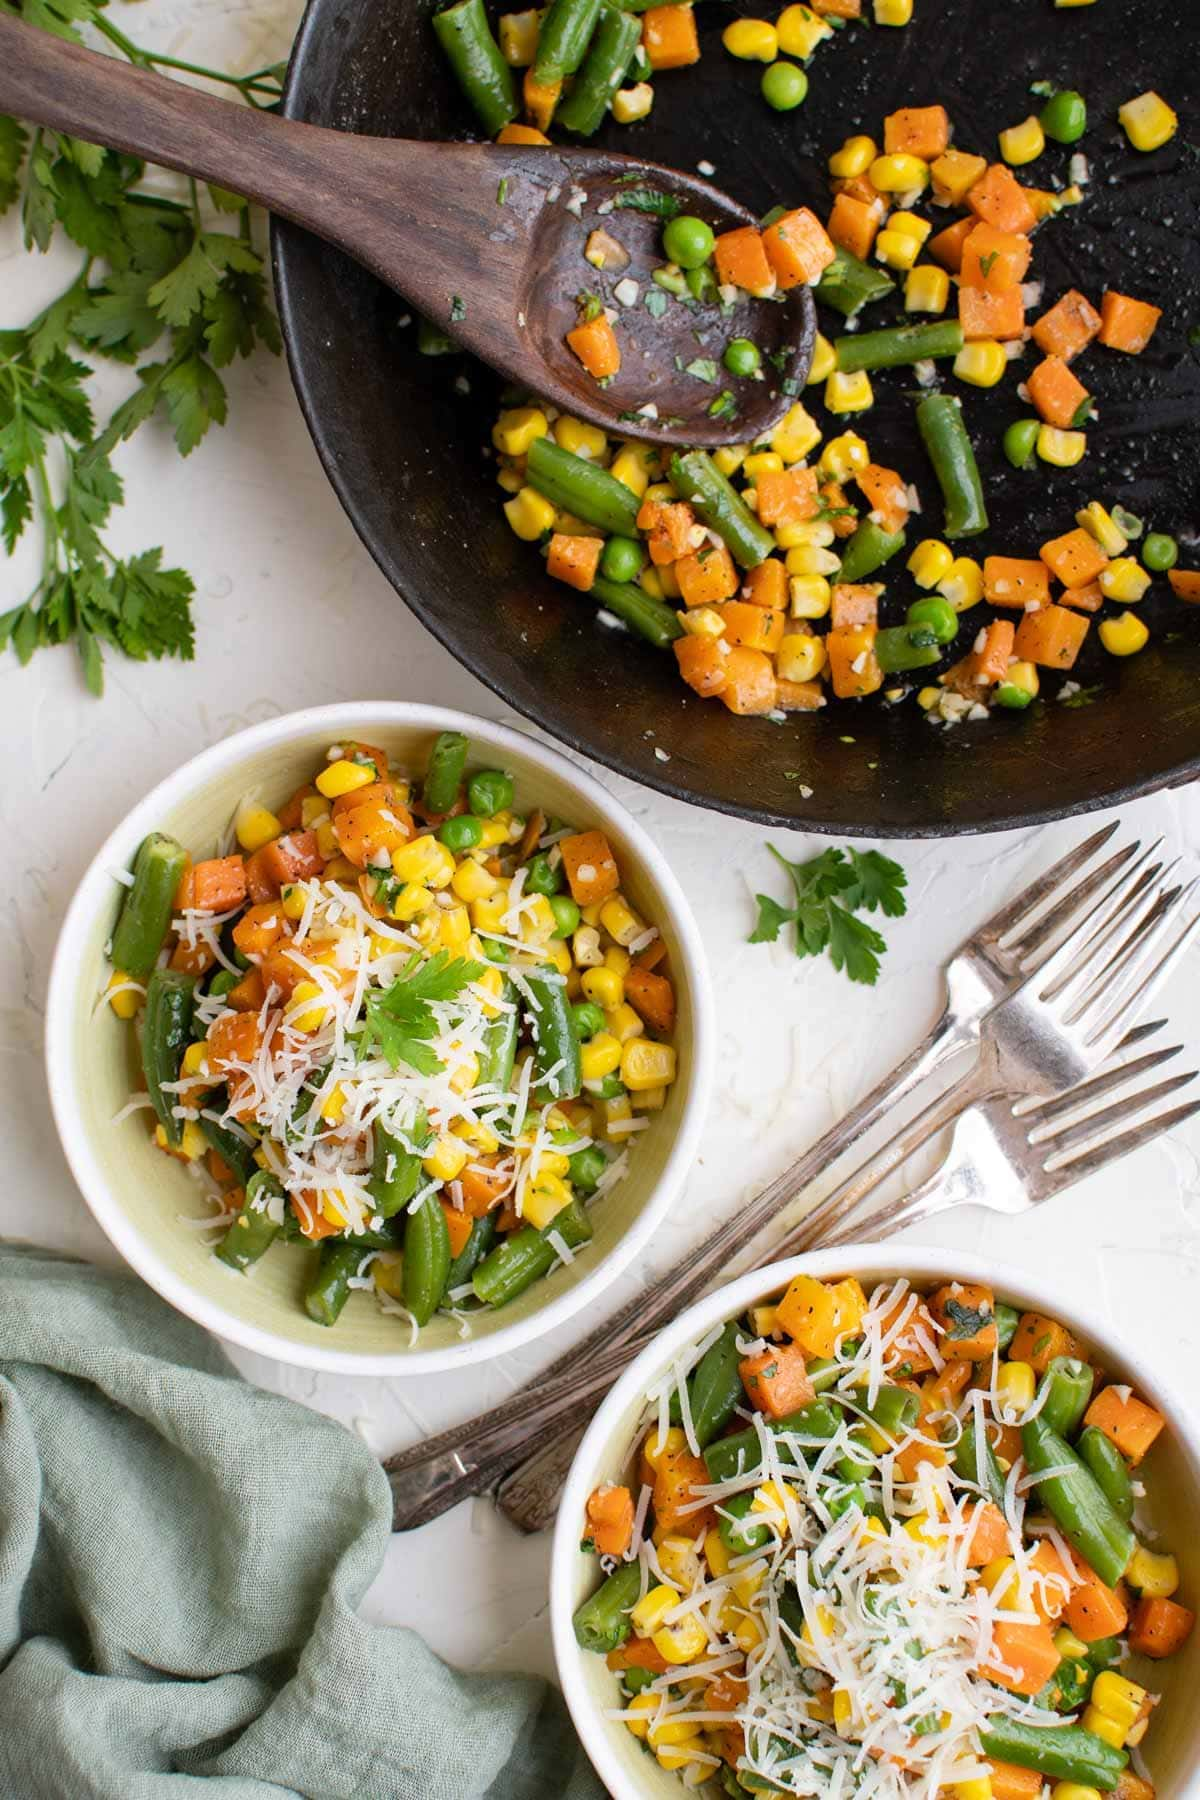 skillet with garlic butter vegetables, two white plates with veggies and parmesan cheese, wooden spoon, parsley sprigs, 3 forks, green napkin